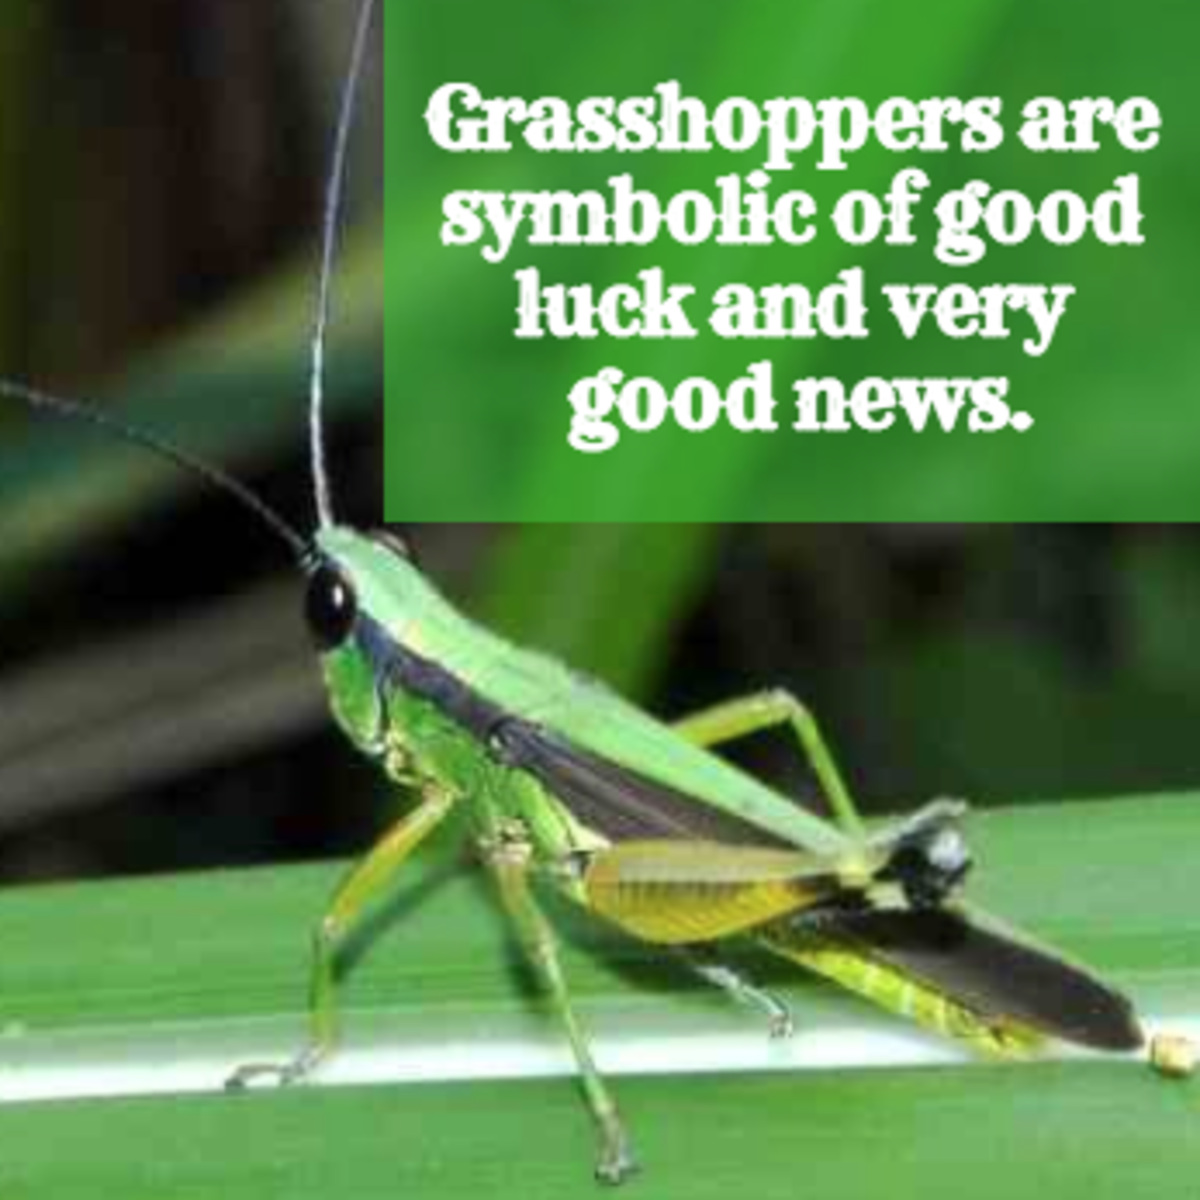 Grasshopper are signs of good luck.